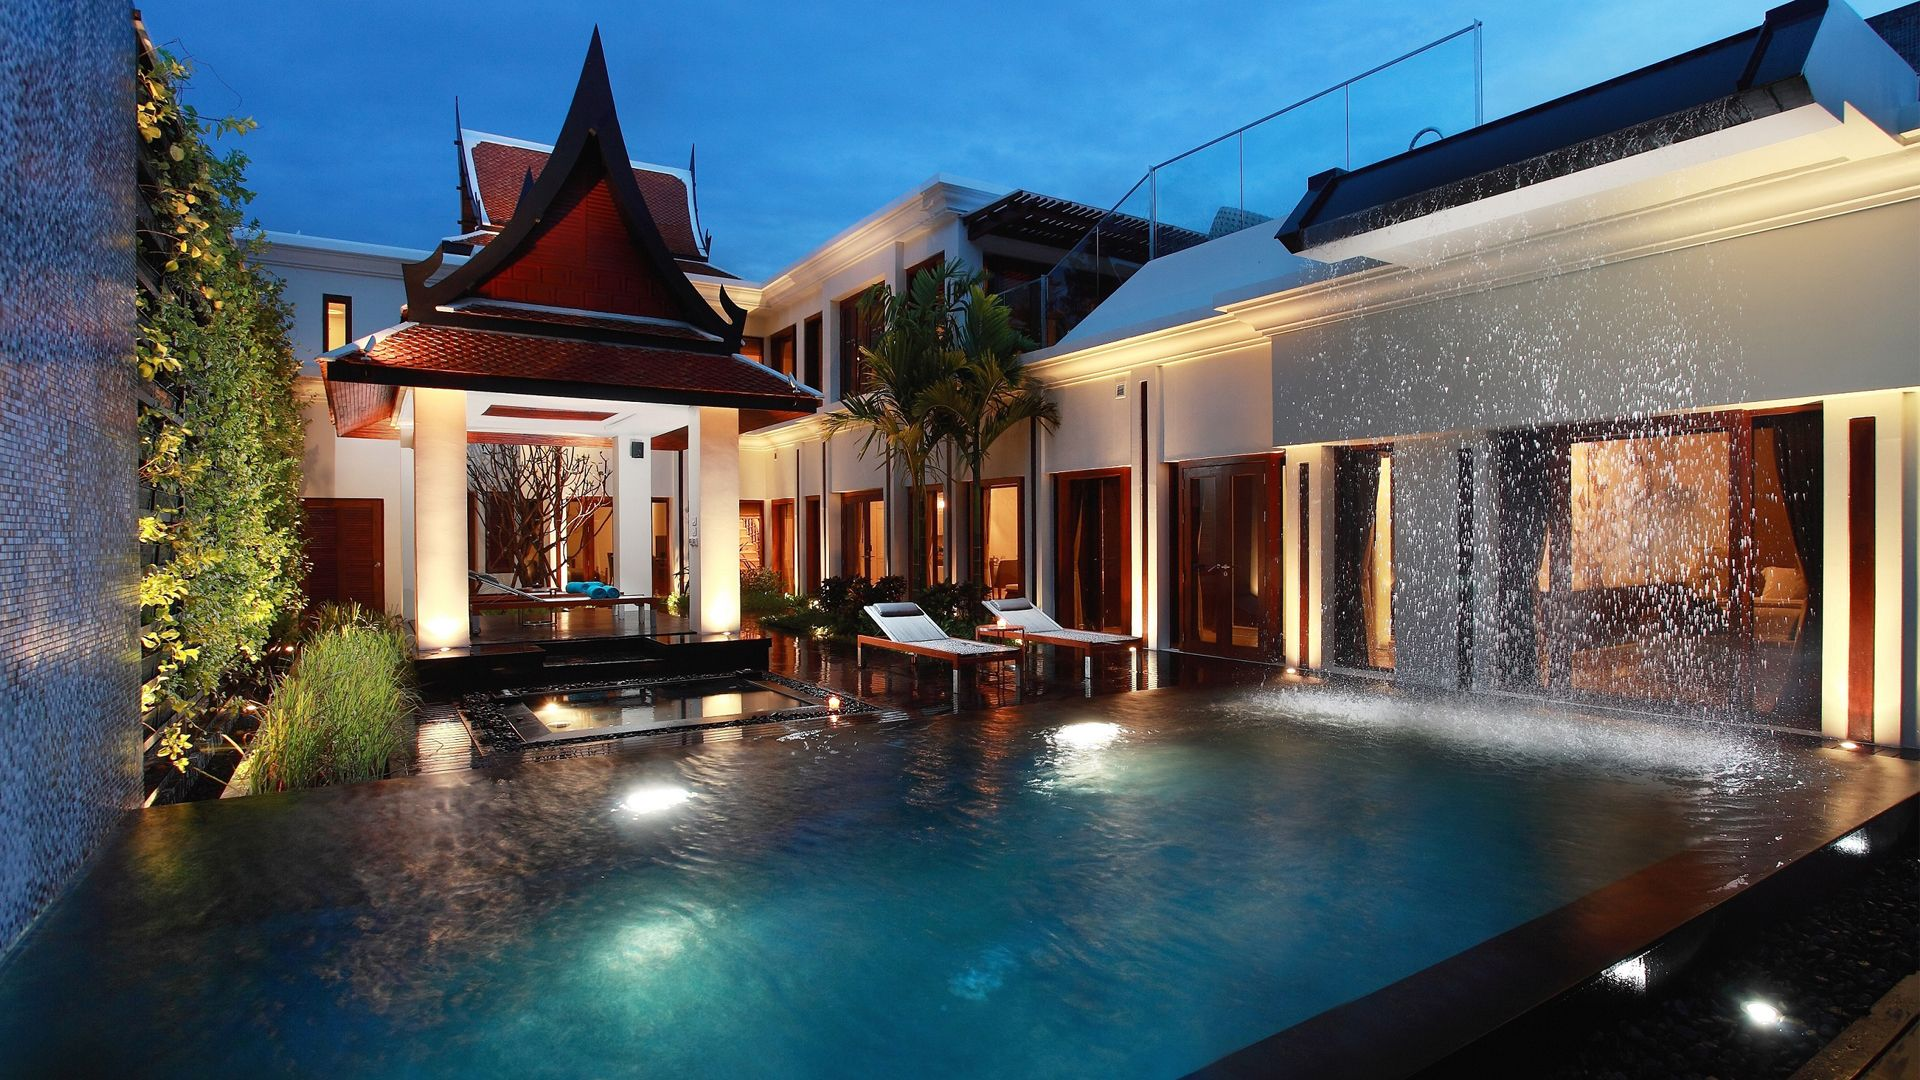 Centara to Manage Three New Hotels in Phuket